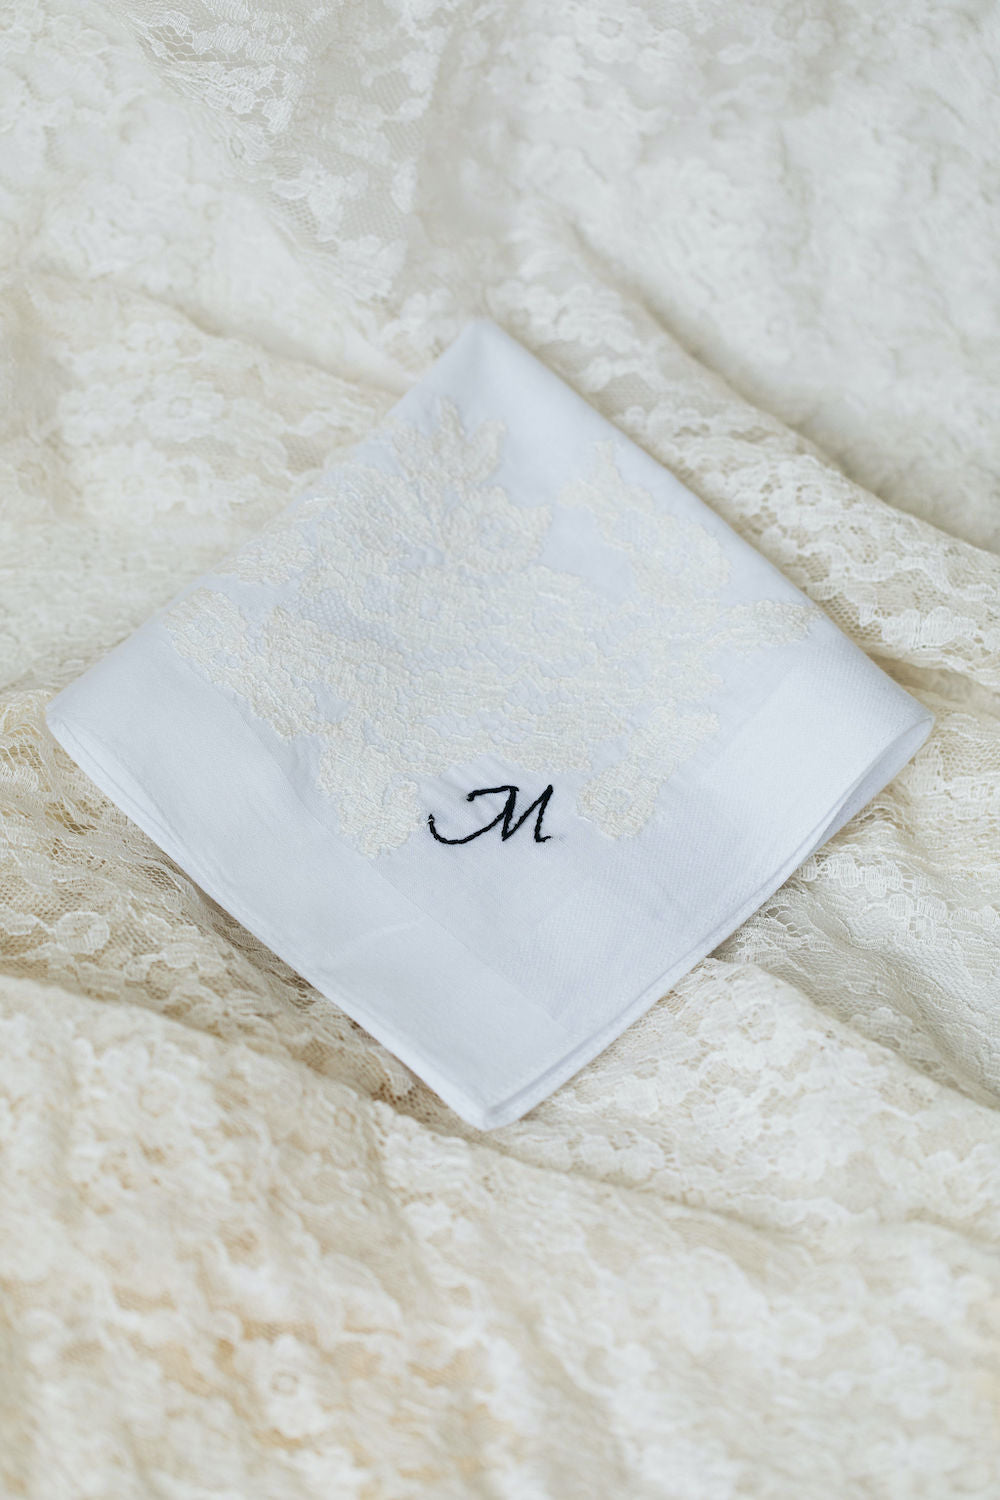 using great grandmother's wedding dress lace on two wedding handkerchiefs personalized with monogram embroidery - handmade wedding heirlooms from The Garter Girl